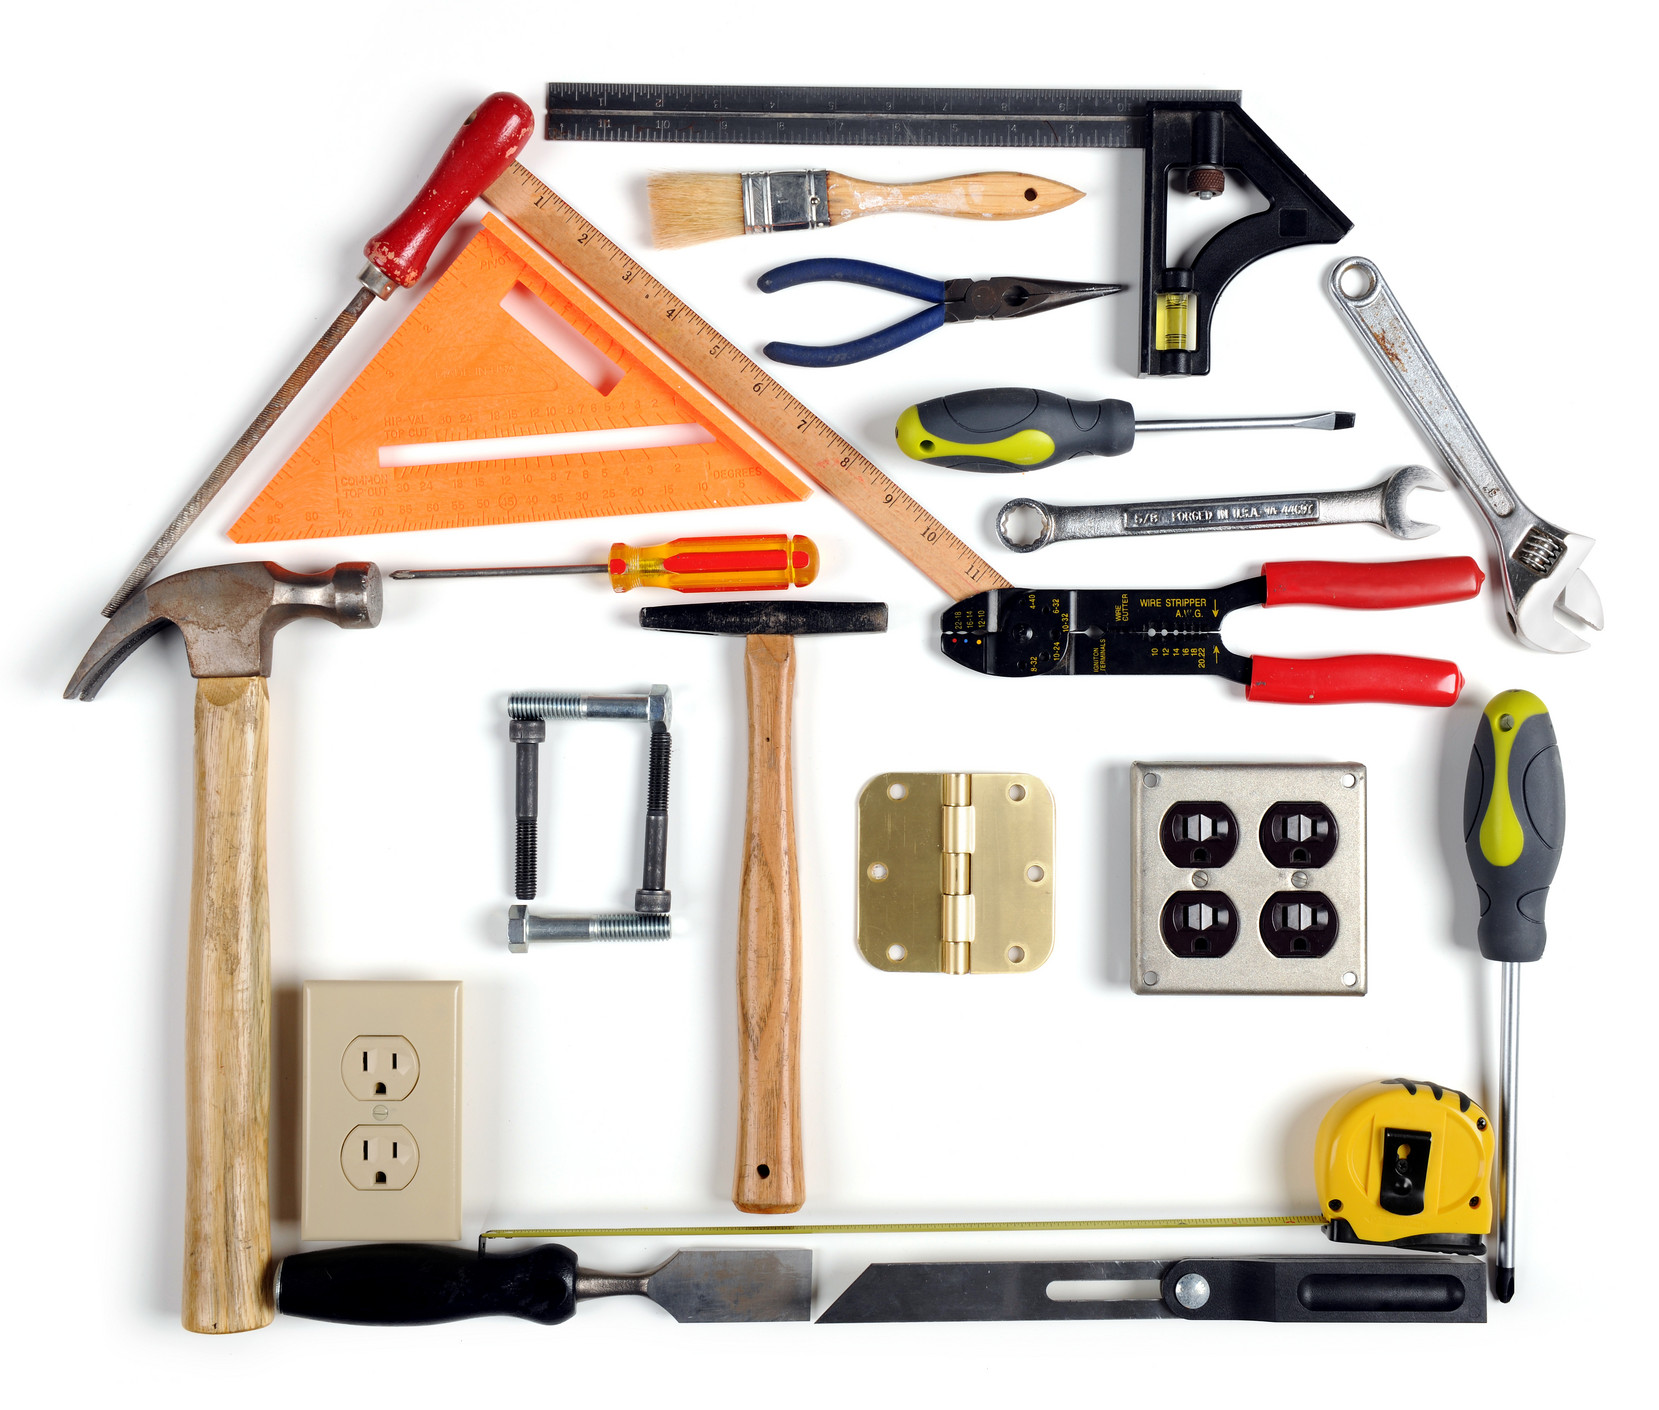 Top 10 inexpensive home improvement tips to increase value of your home « Home Loans